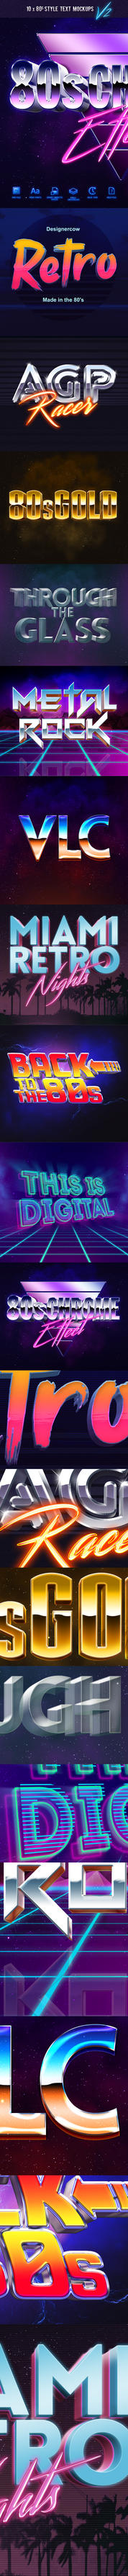 80's Style Text Mockups V2 by GraphicAssets